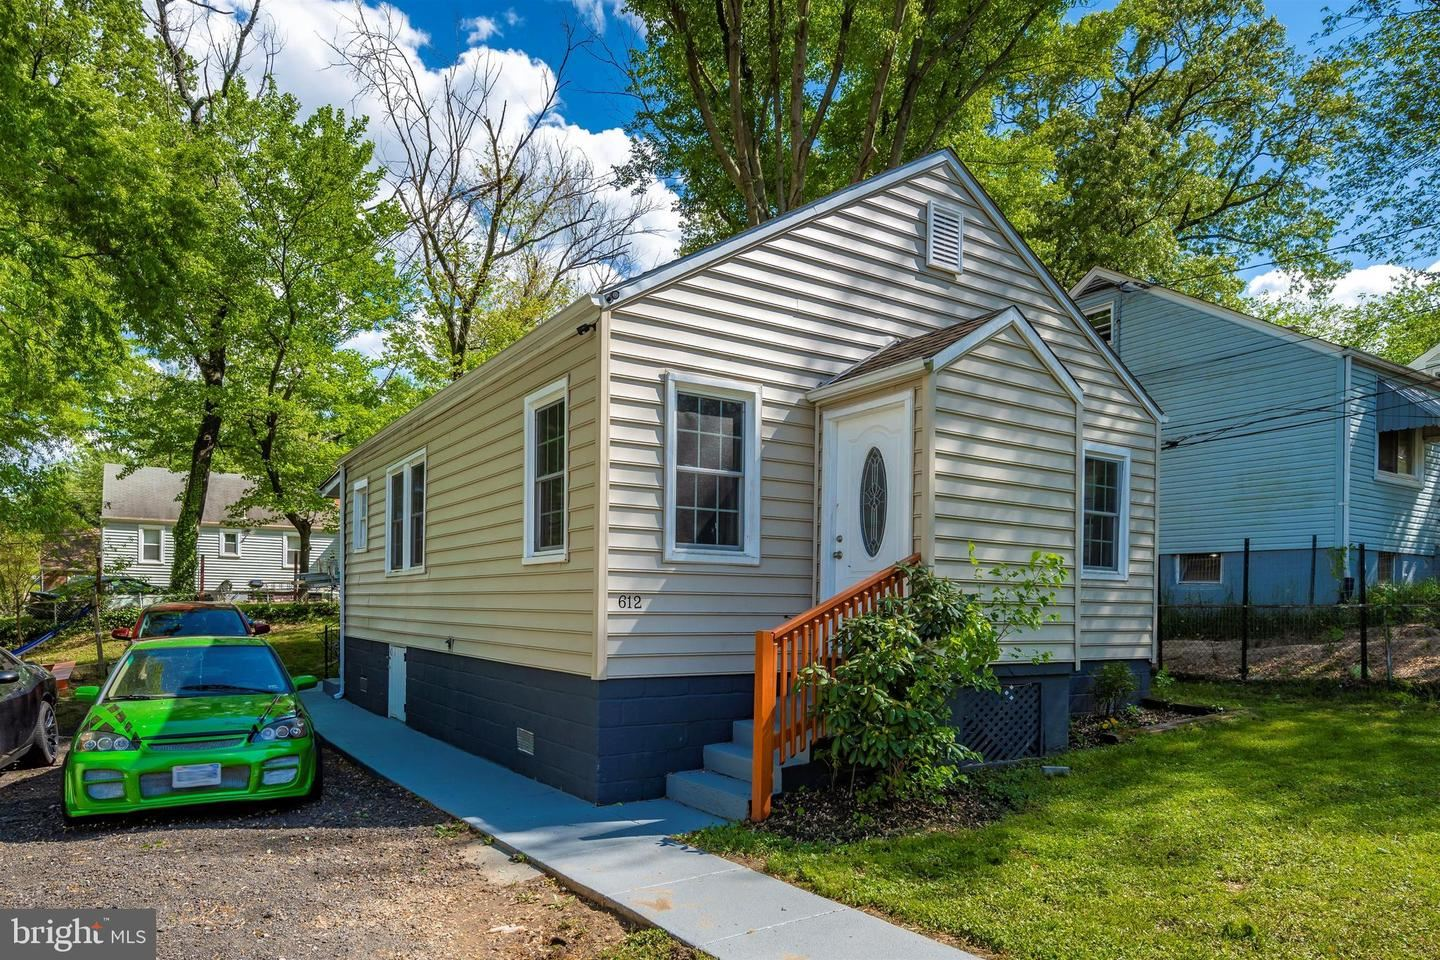 Photo for 612 CLOVIS AVE, CAPITOL HEIGHTS, MD 20743 (MLS # MDPG605498)